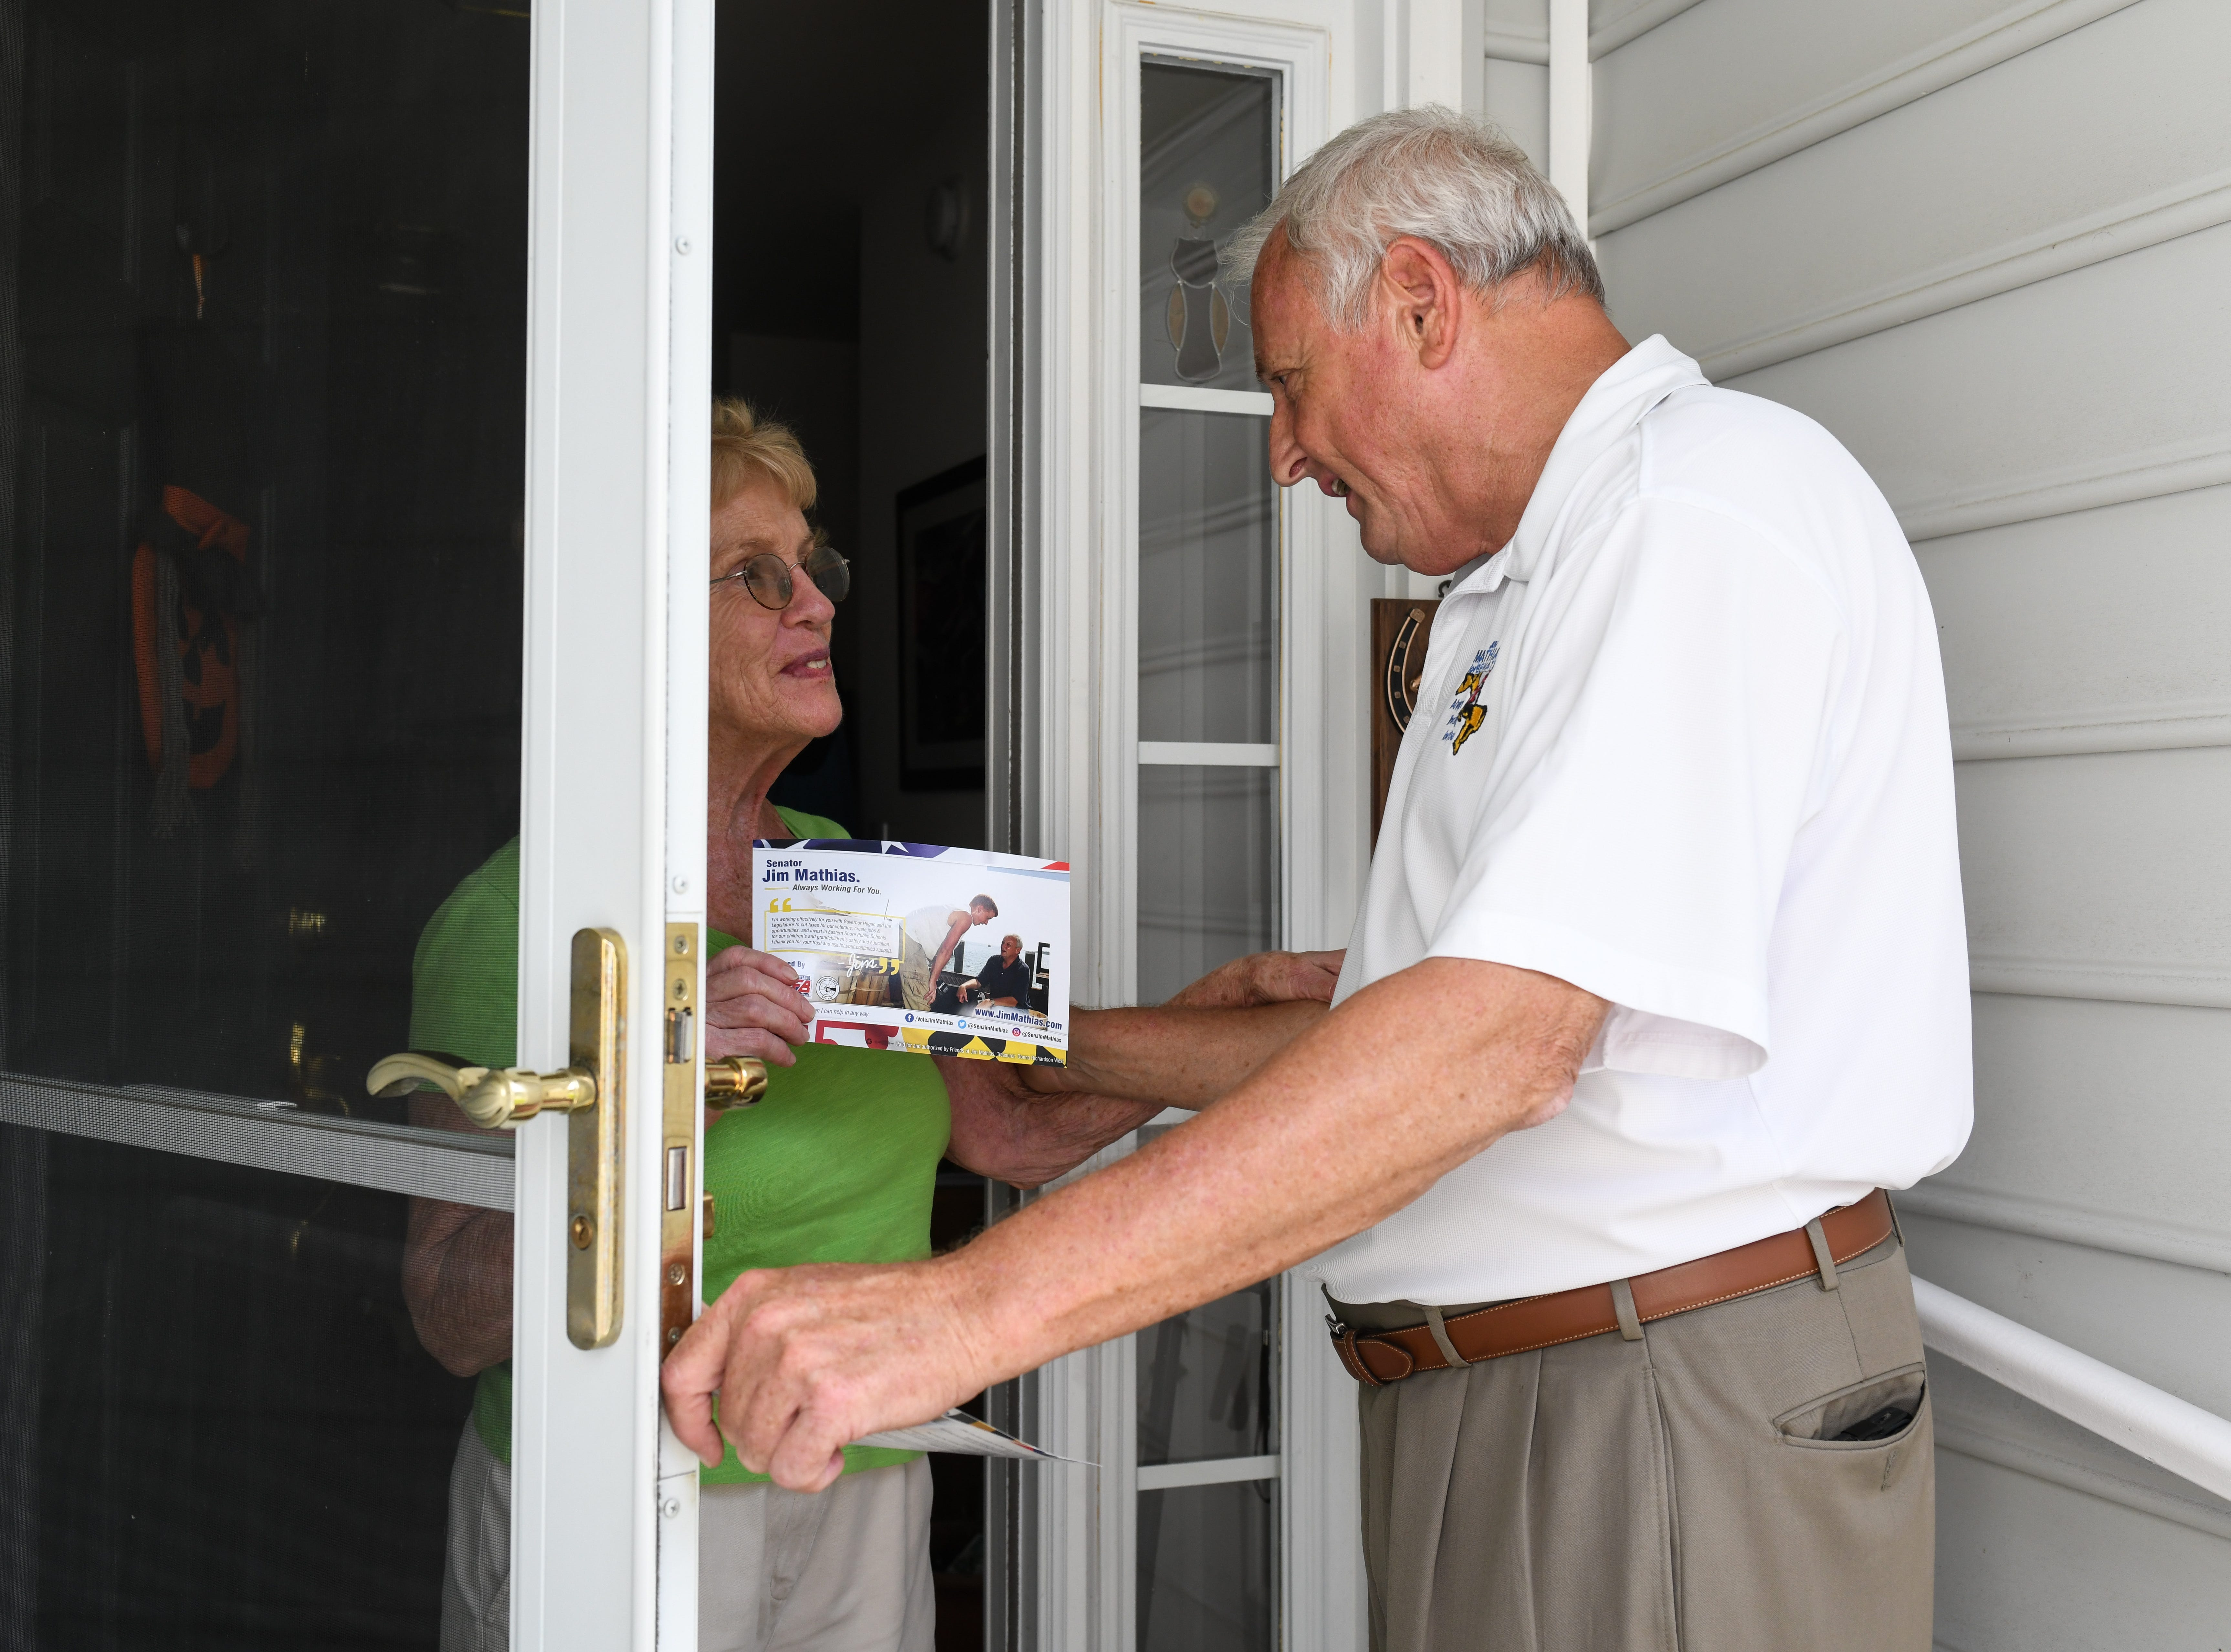 Sen. Jim Mathias, Democratic incumbent candidate for Maryland State Senate in District 38, talks to voter Elizabeth Watson in Ocean Pines while campaigning on Tuesday, Oct 2, 2018.